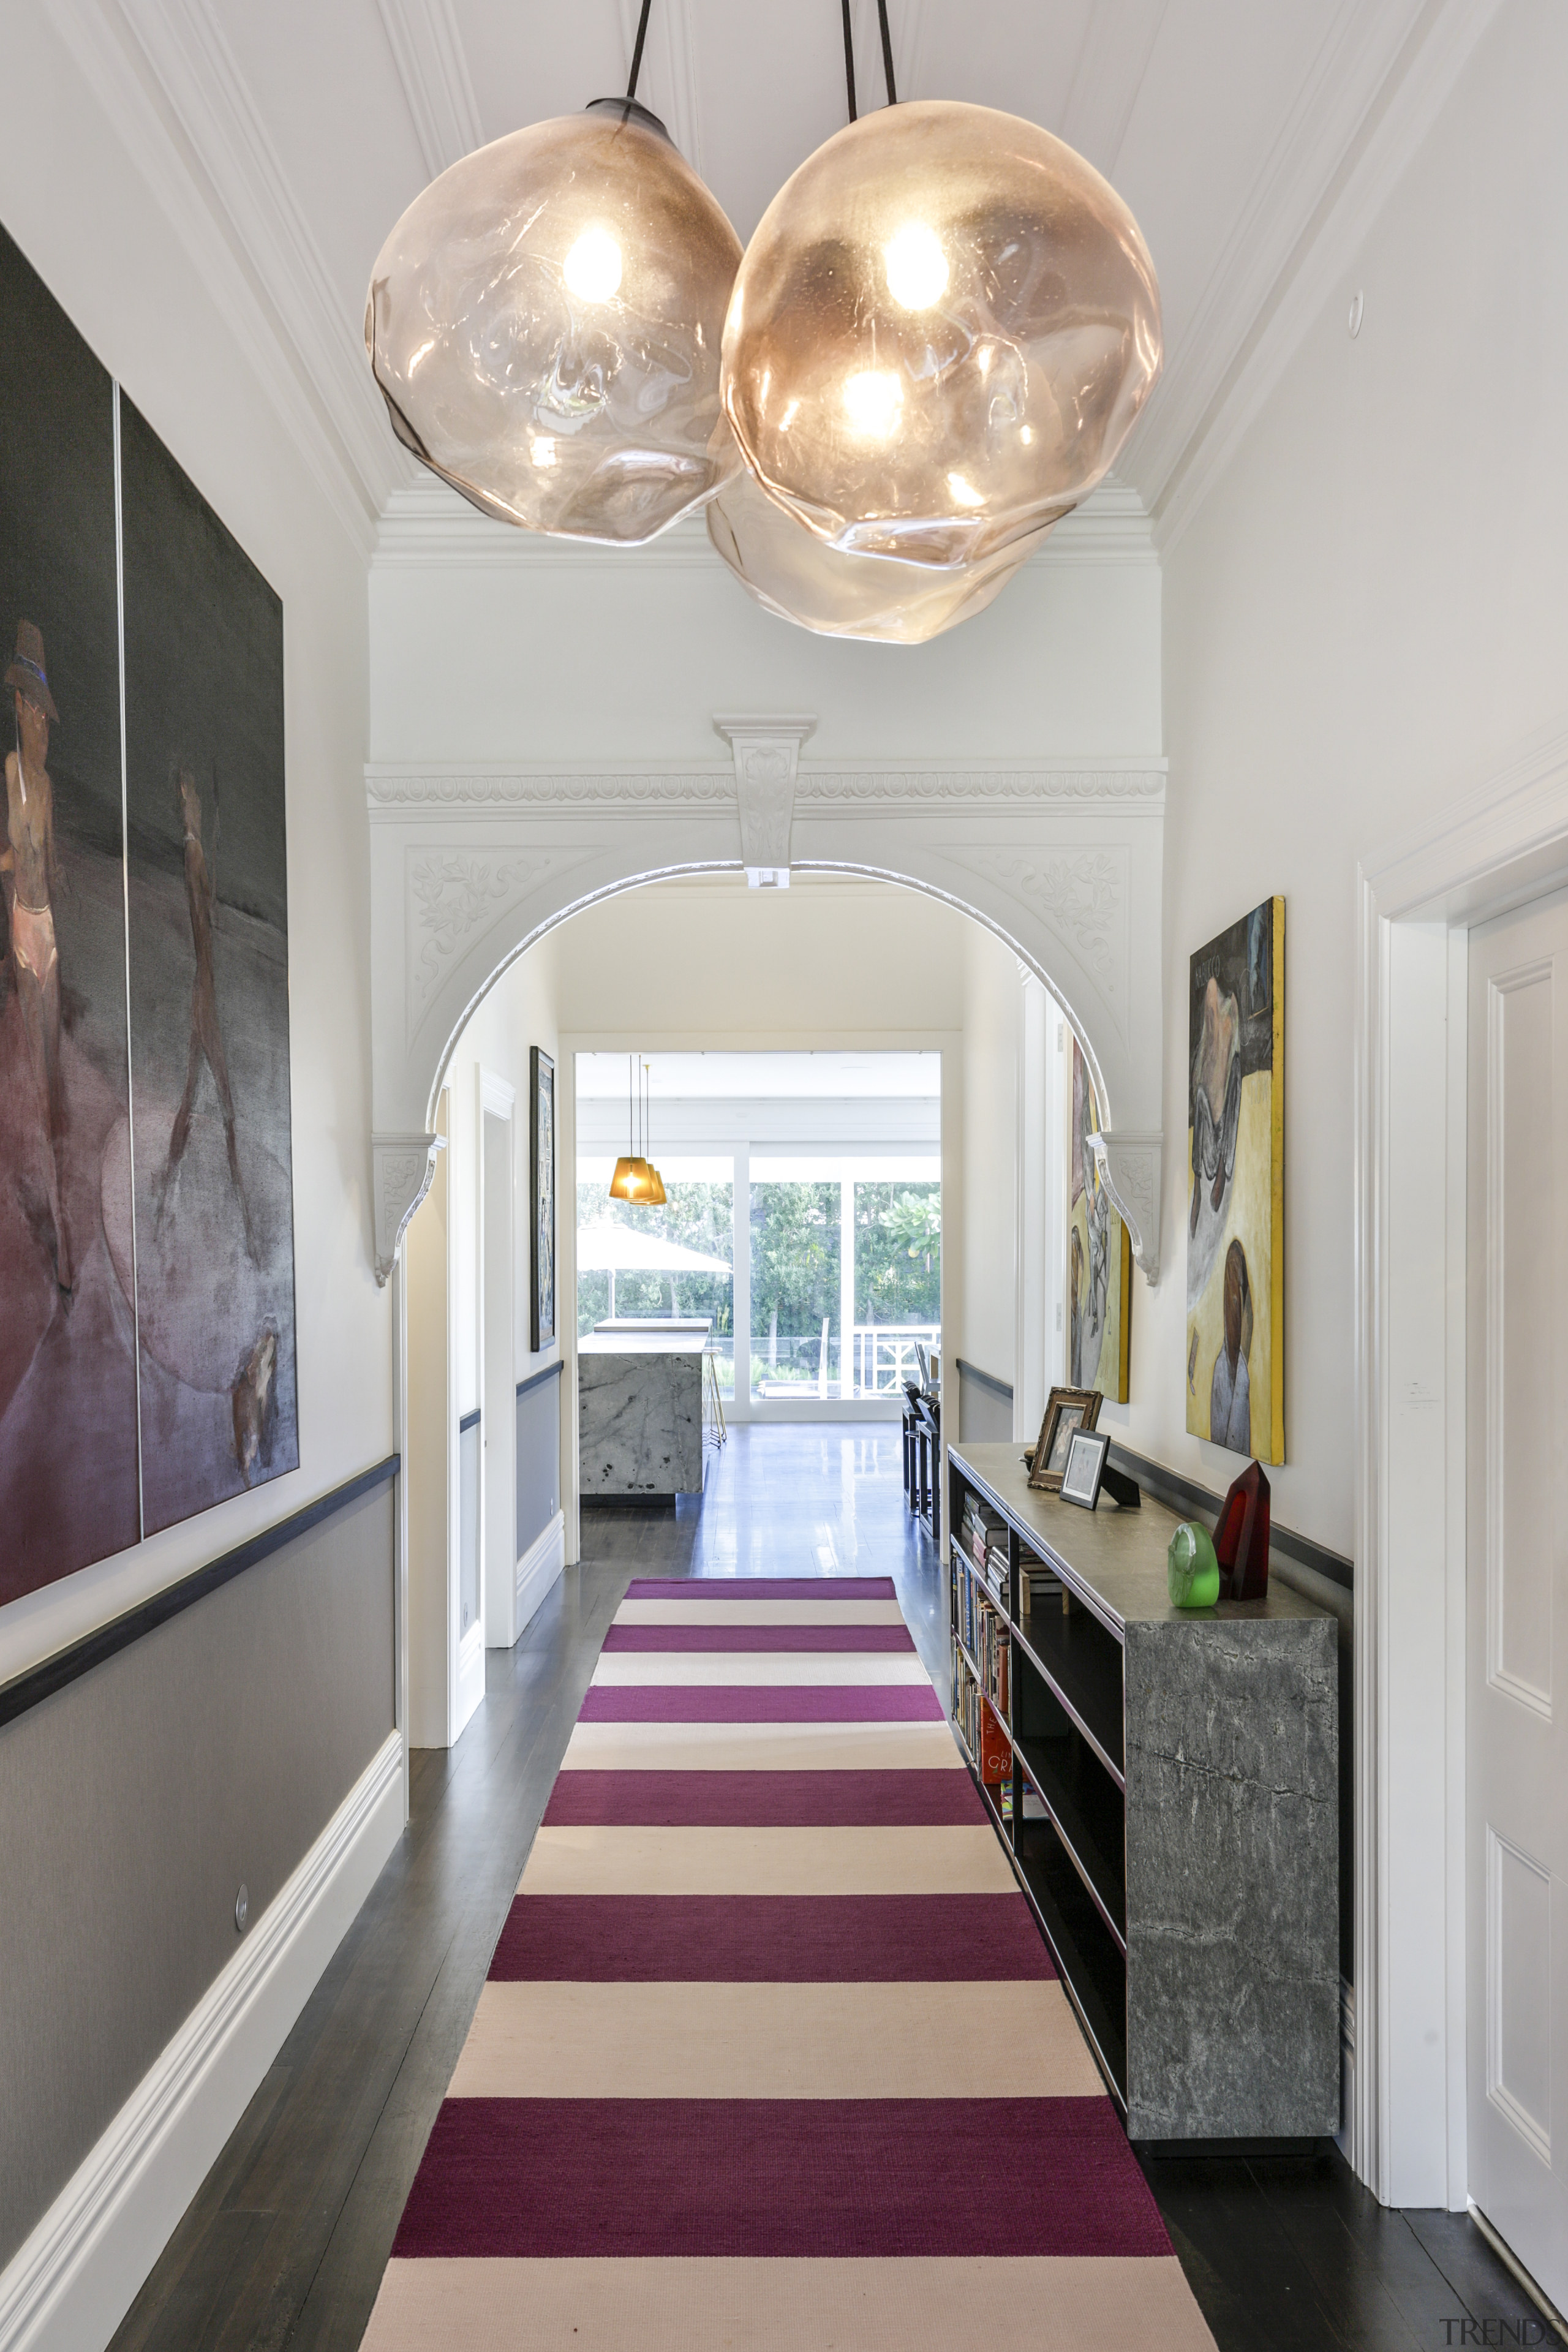 Classic detailing was restored in the hall and ceiling, home, interior design, hallway, Matt Brew Architect